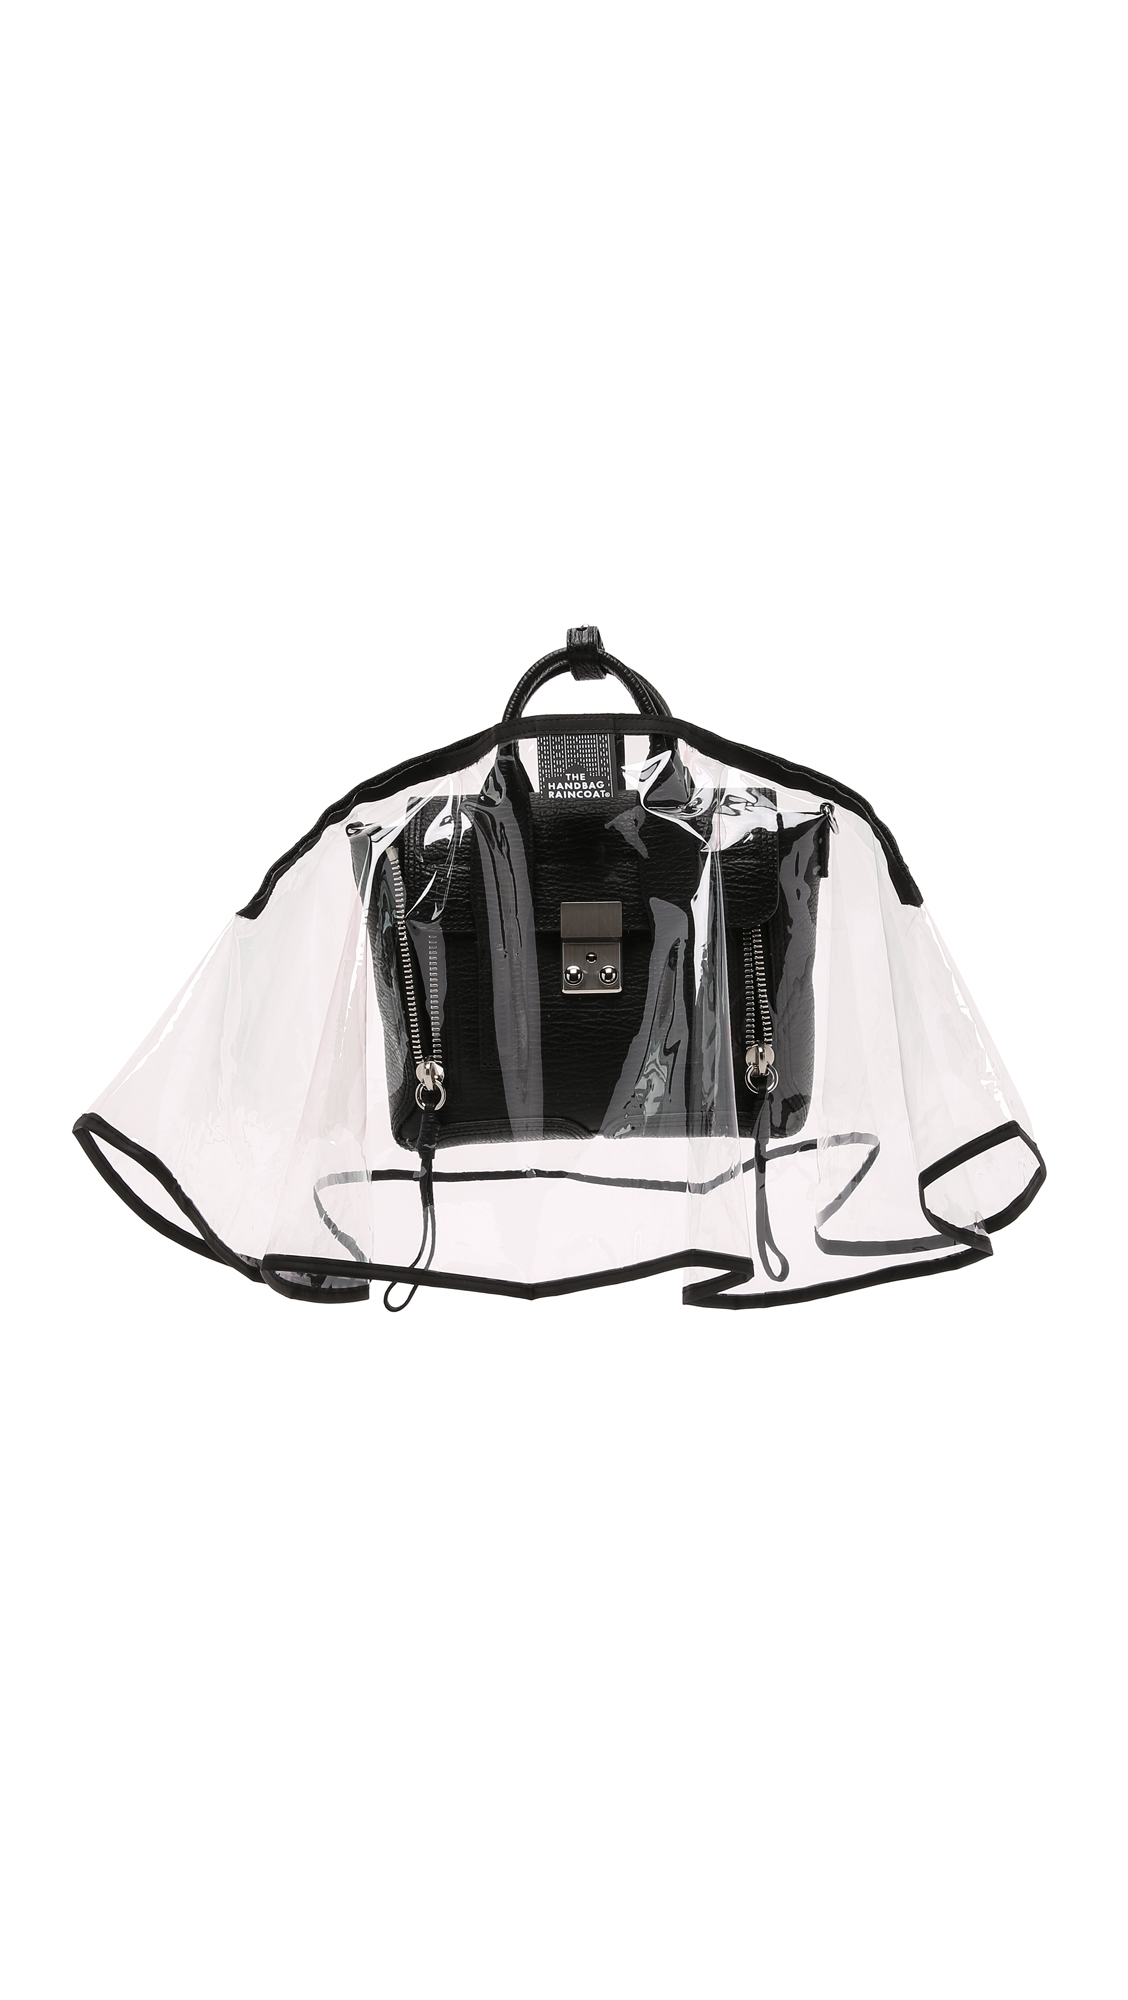 The Handbag Raincoat Mini City Slicker Handbag Raincoat